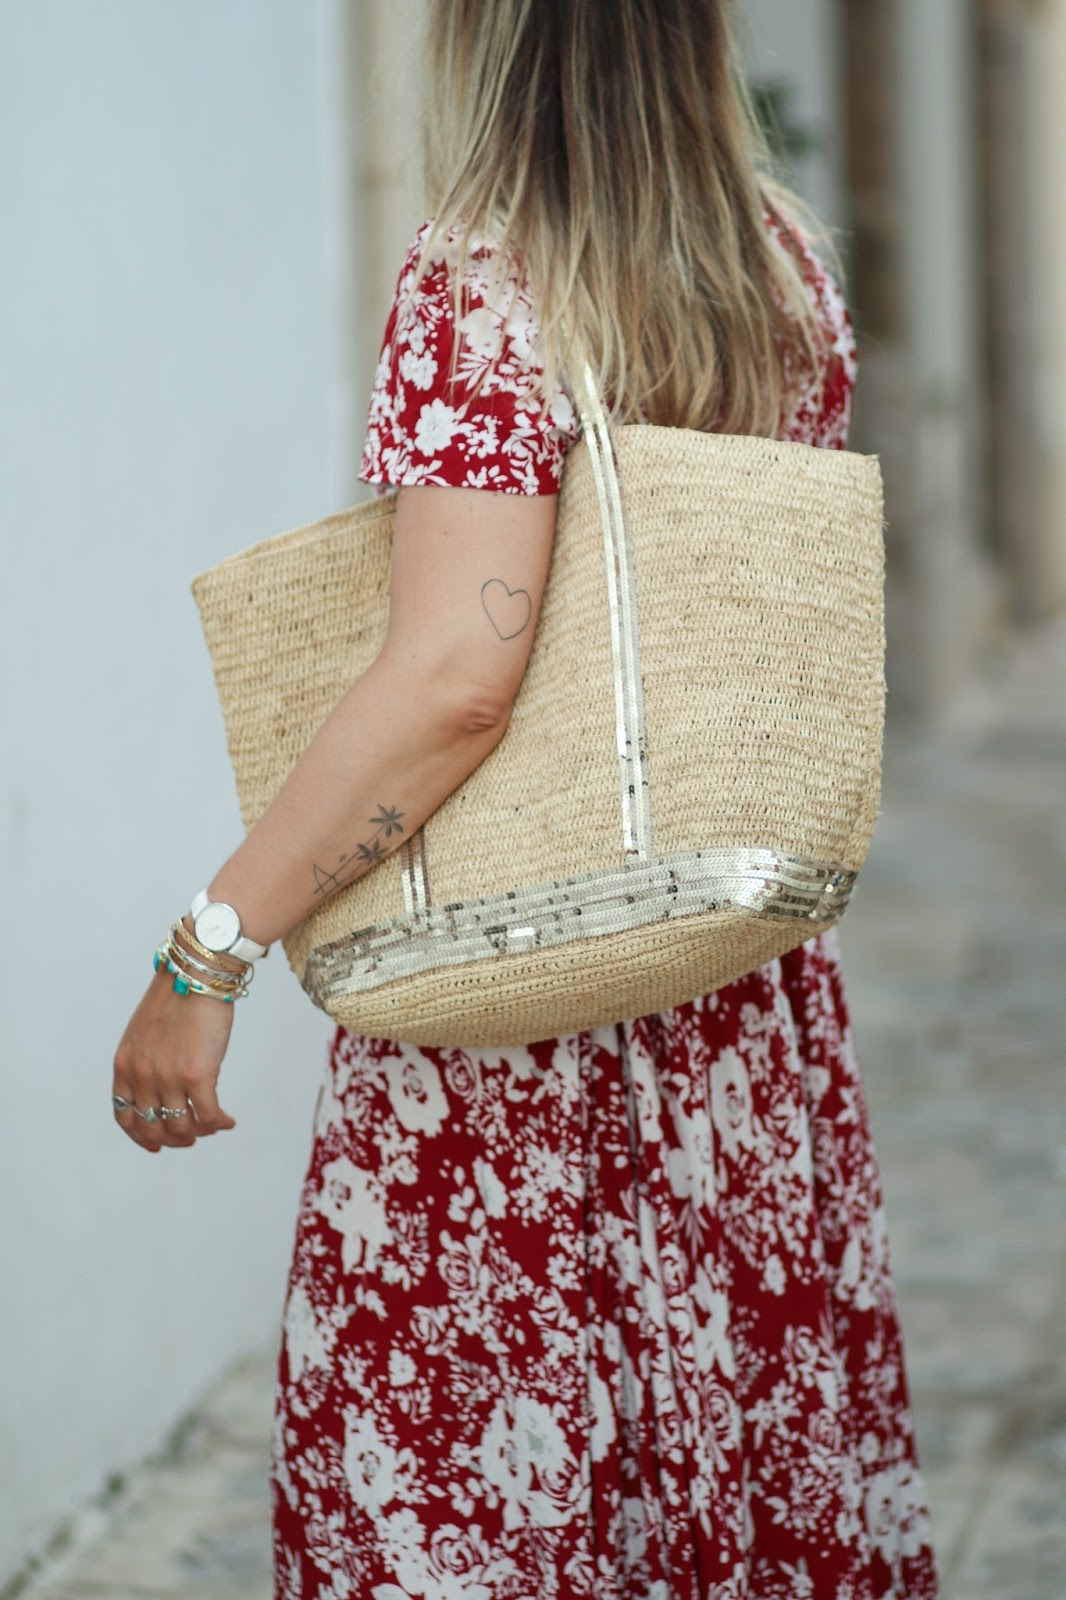 sac cabas vanessa bruno parisgrenoble